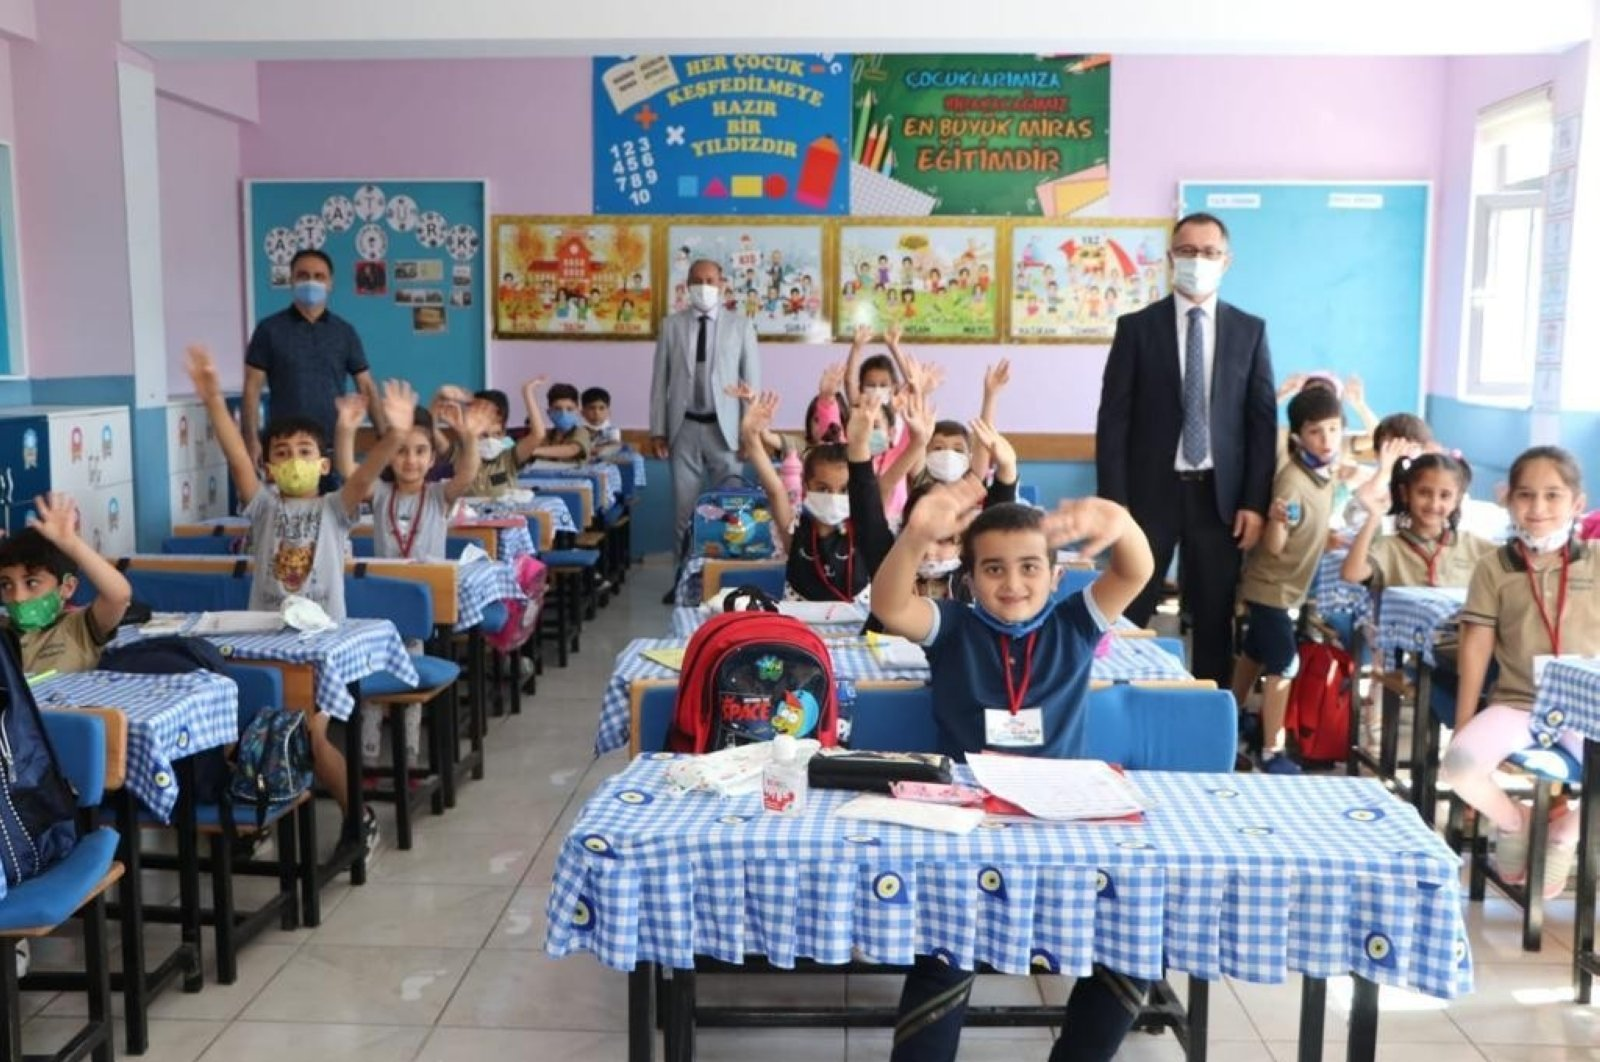 Children and school staff are seen in a classroom at a school in Diyarbakır, southeastern Turkey, Oct. 5, 2020. (IHA Photo)